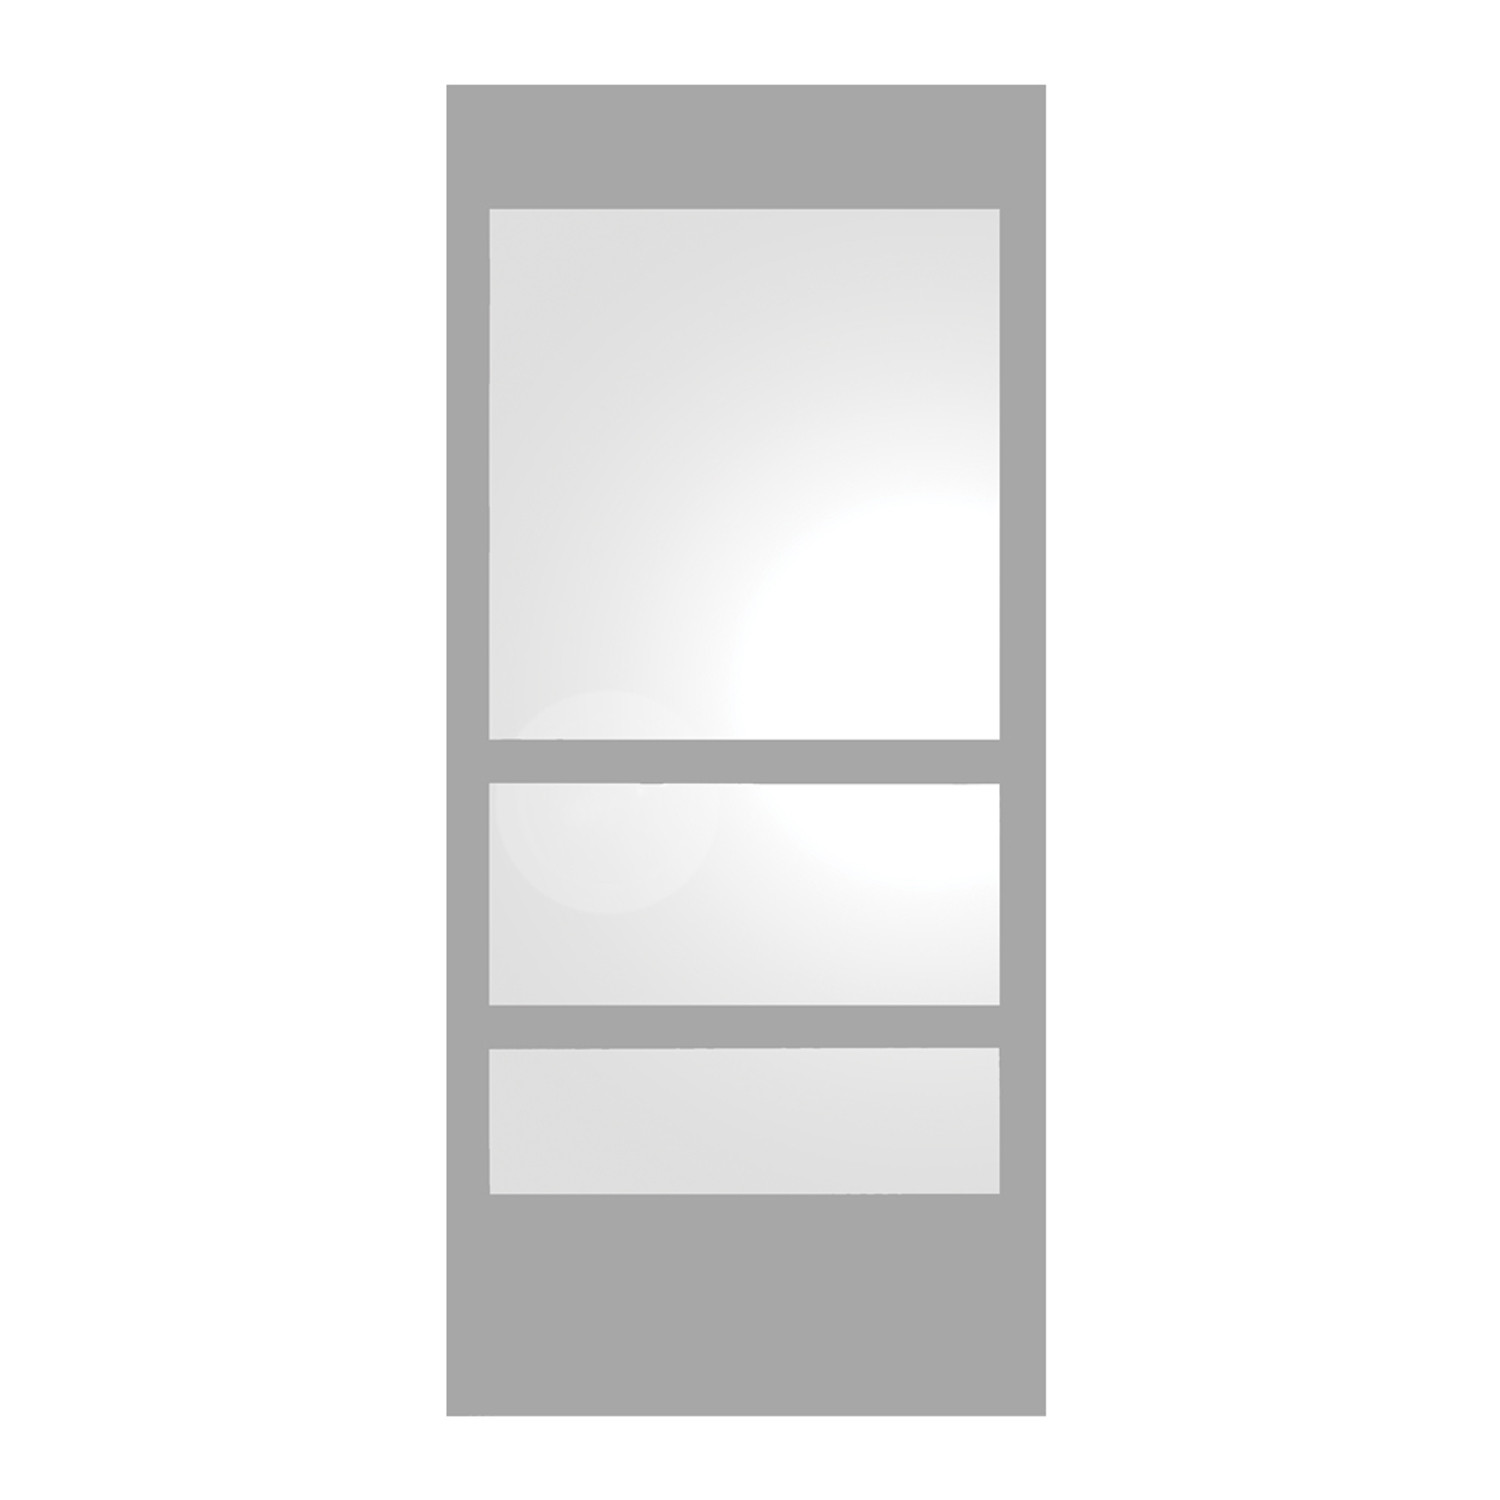 Whitehause WHE11-GREY Rectangular Ecoloom Mirror With Laminated Colored Glass Borderin Grey